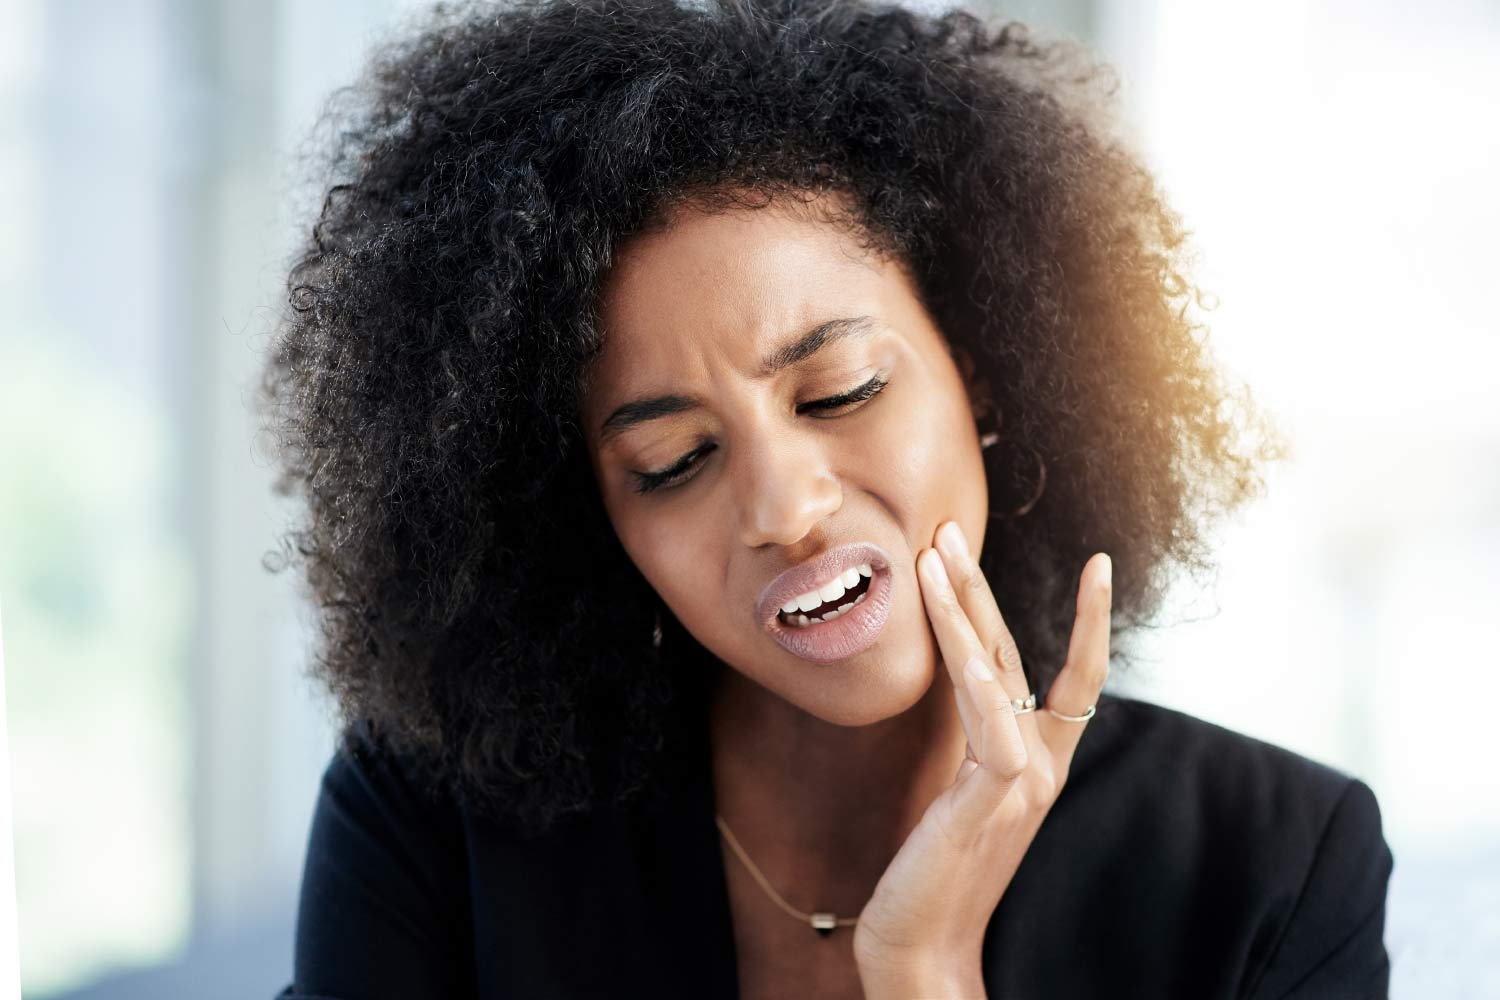 Curly-haired woman in a black shirt cringes in pain and touches her cheek due to a toothache dental emergency